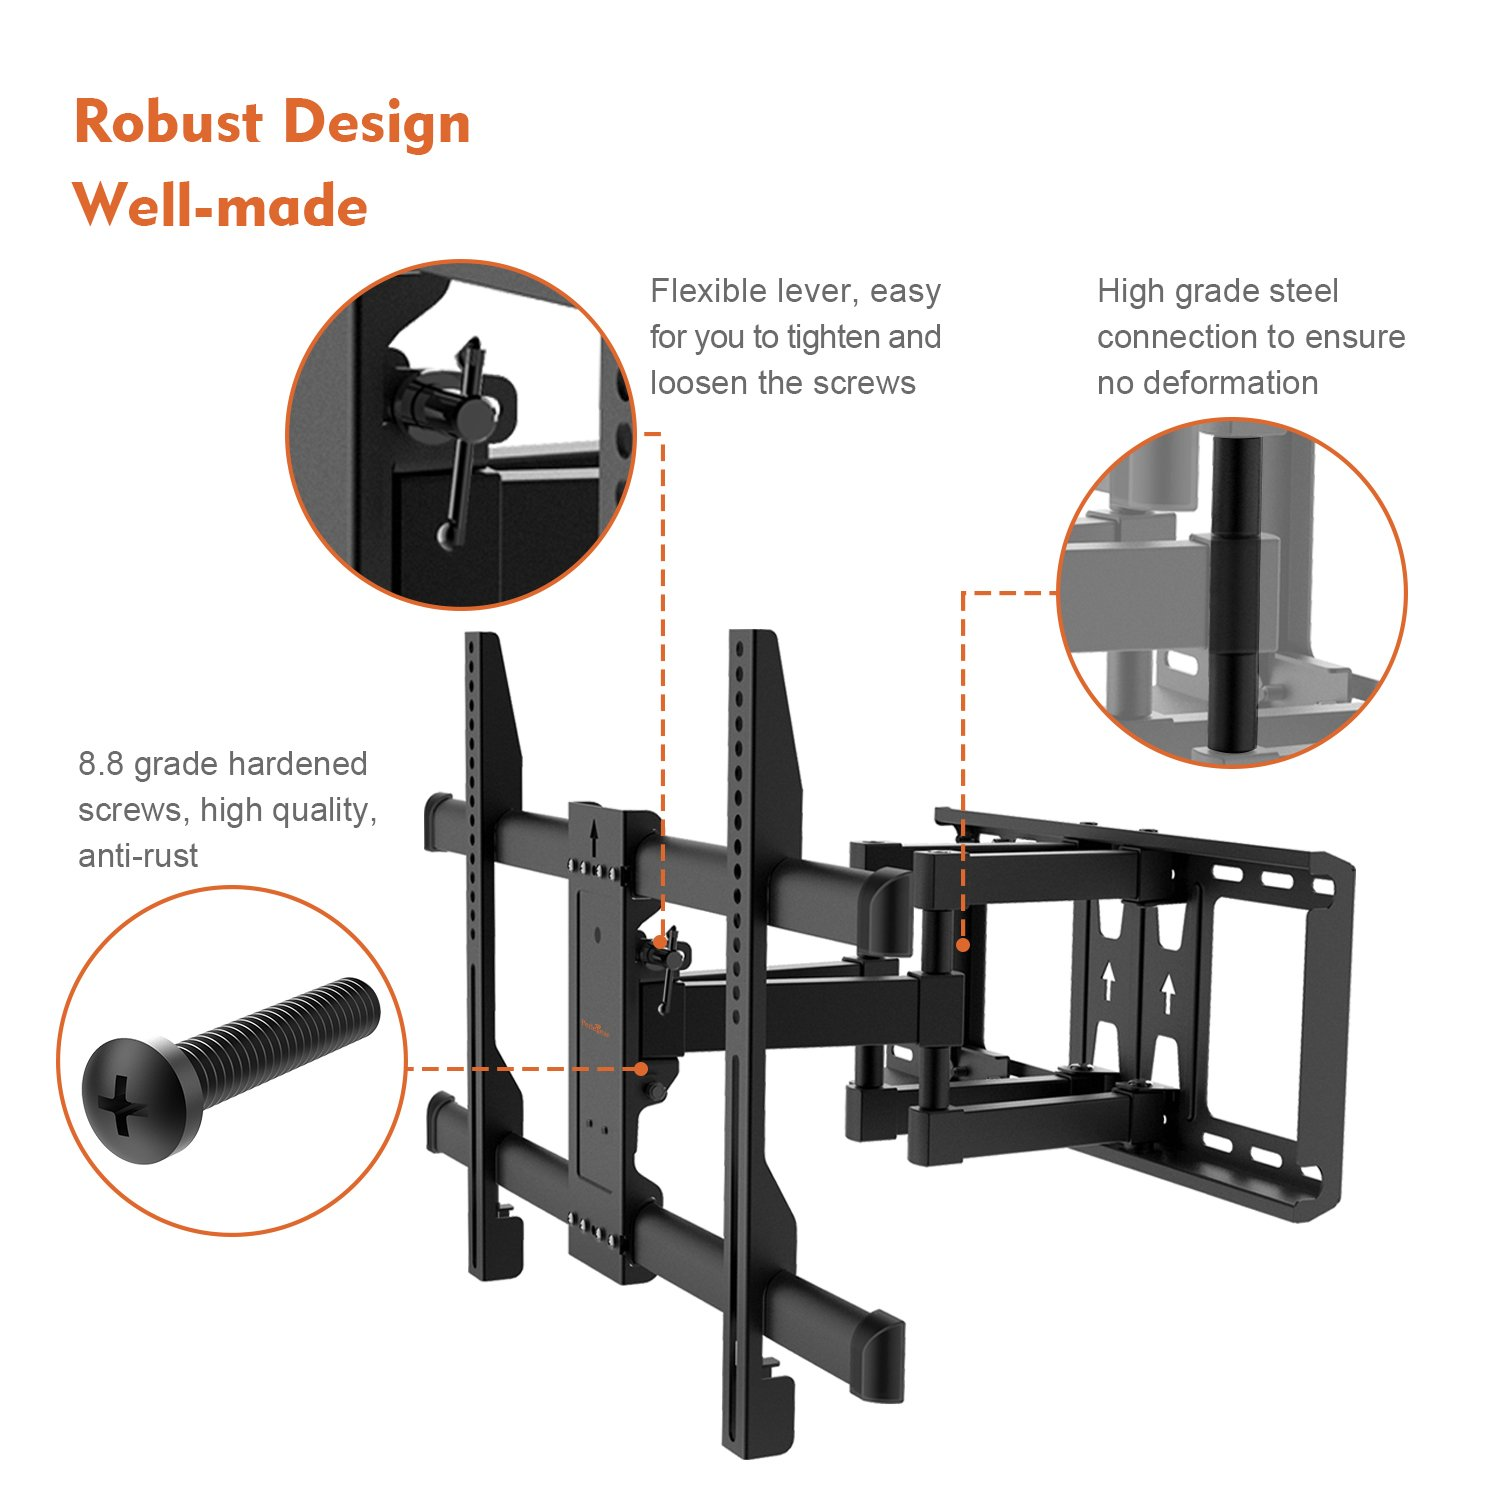 "Perlegear TV Wall Bracket - Extends & Swivels - TV Mount fits 37""-70"" TVs - Holds up to 100lbs, Adjustable Viewing Angle - Bonus 10ft HDMI Cable & Concrete Anchors Plus more"